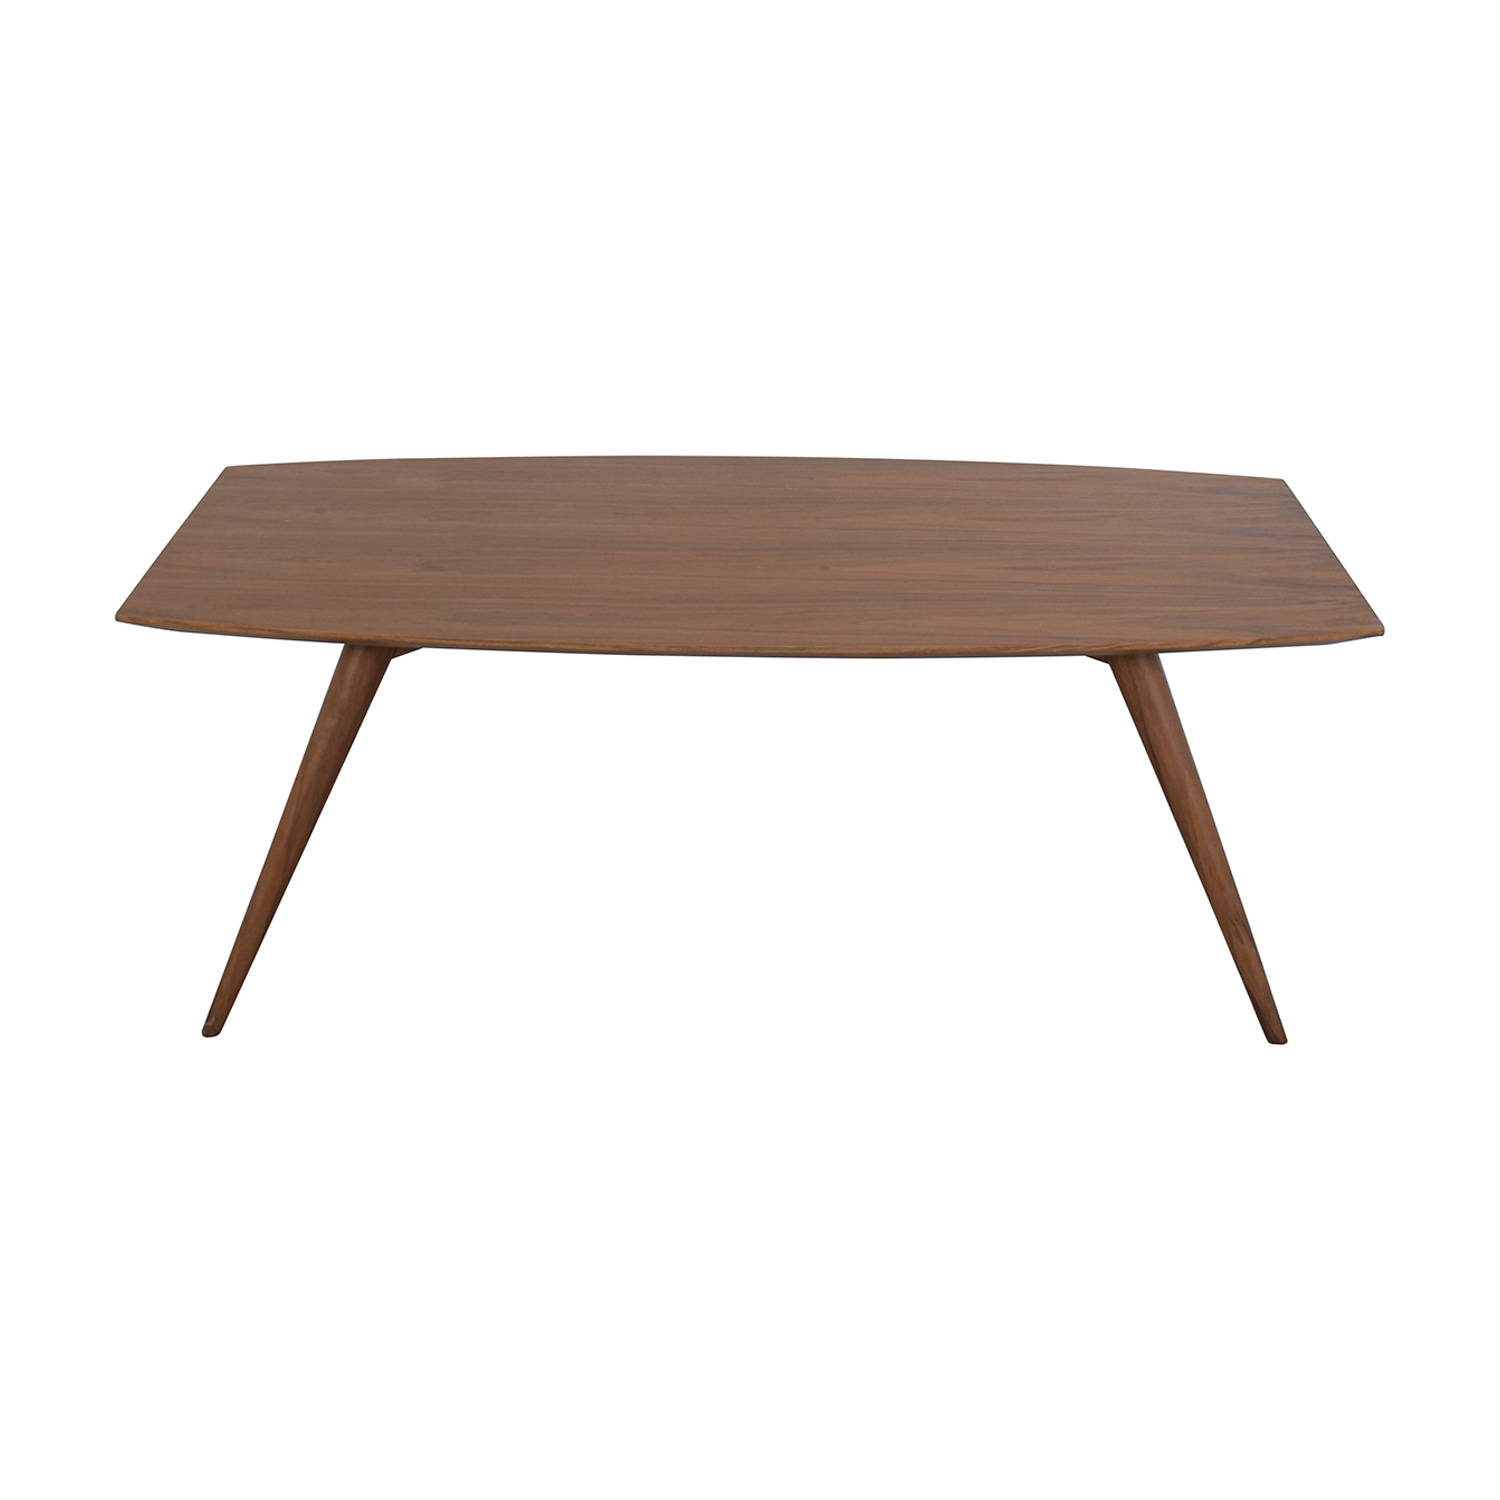 77% OFF   Eurø Style Euro Style Mid Century Dining Table / Tables